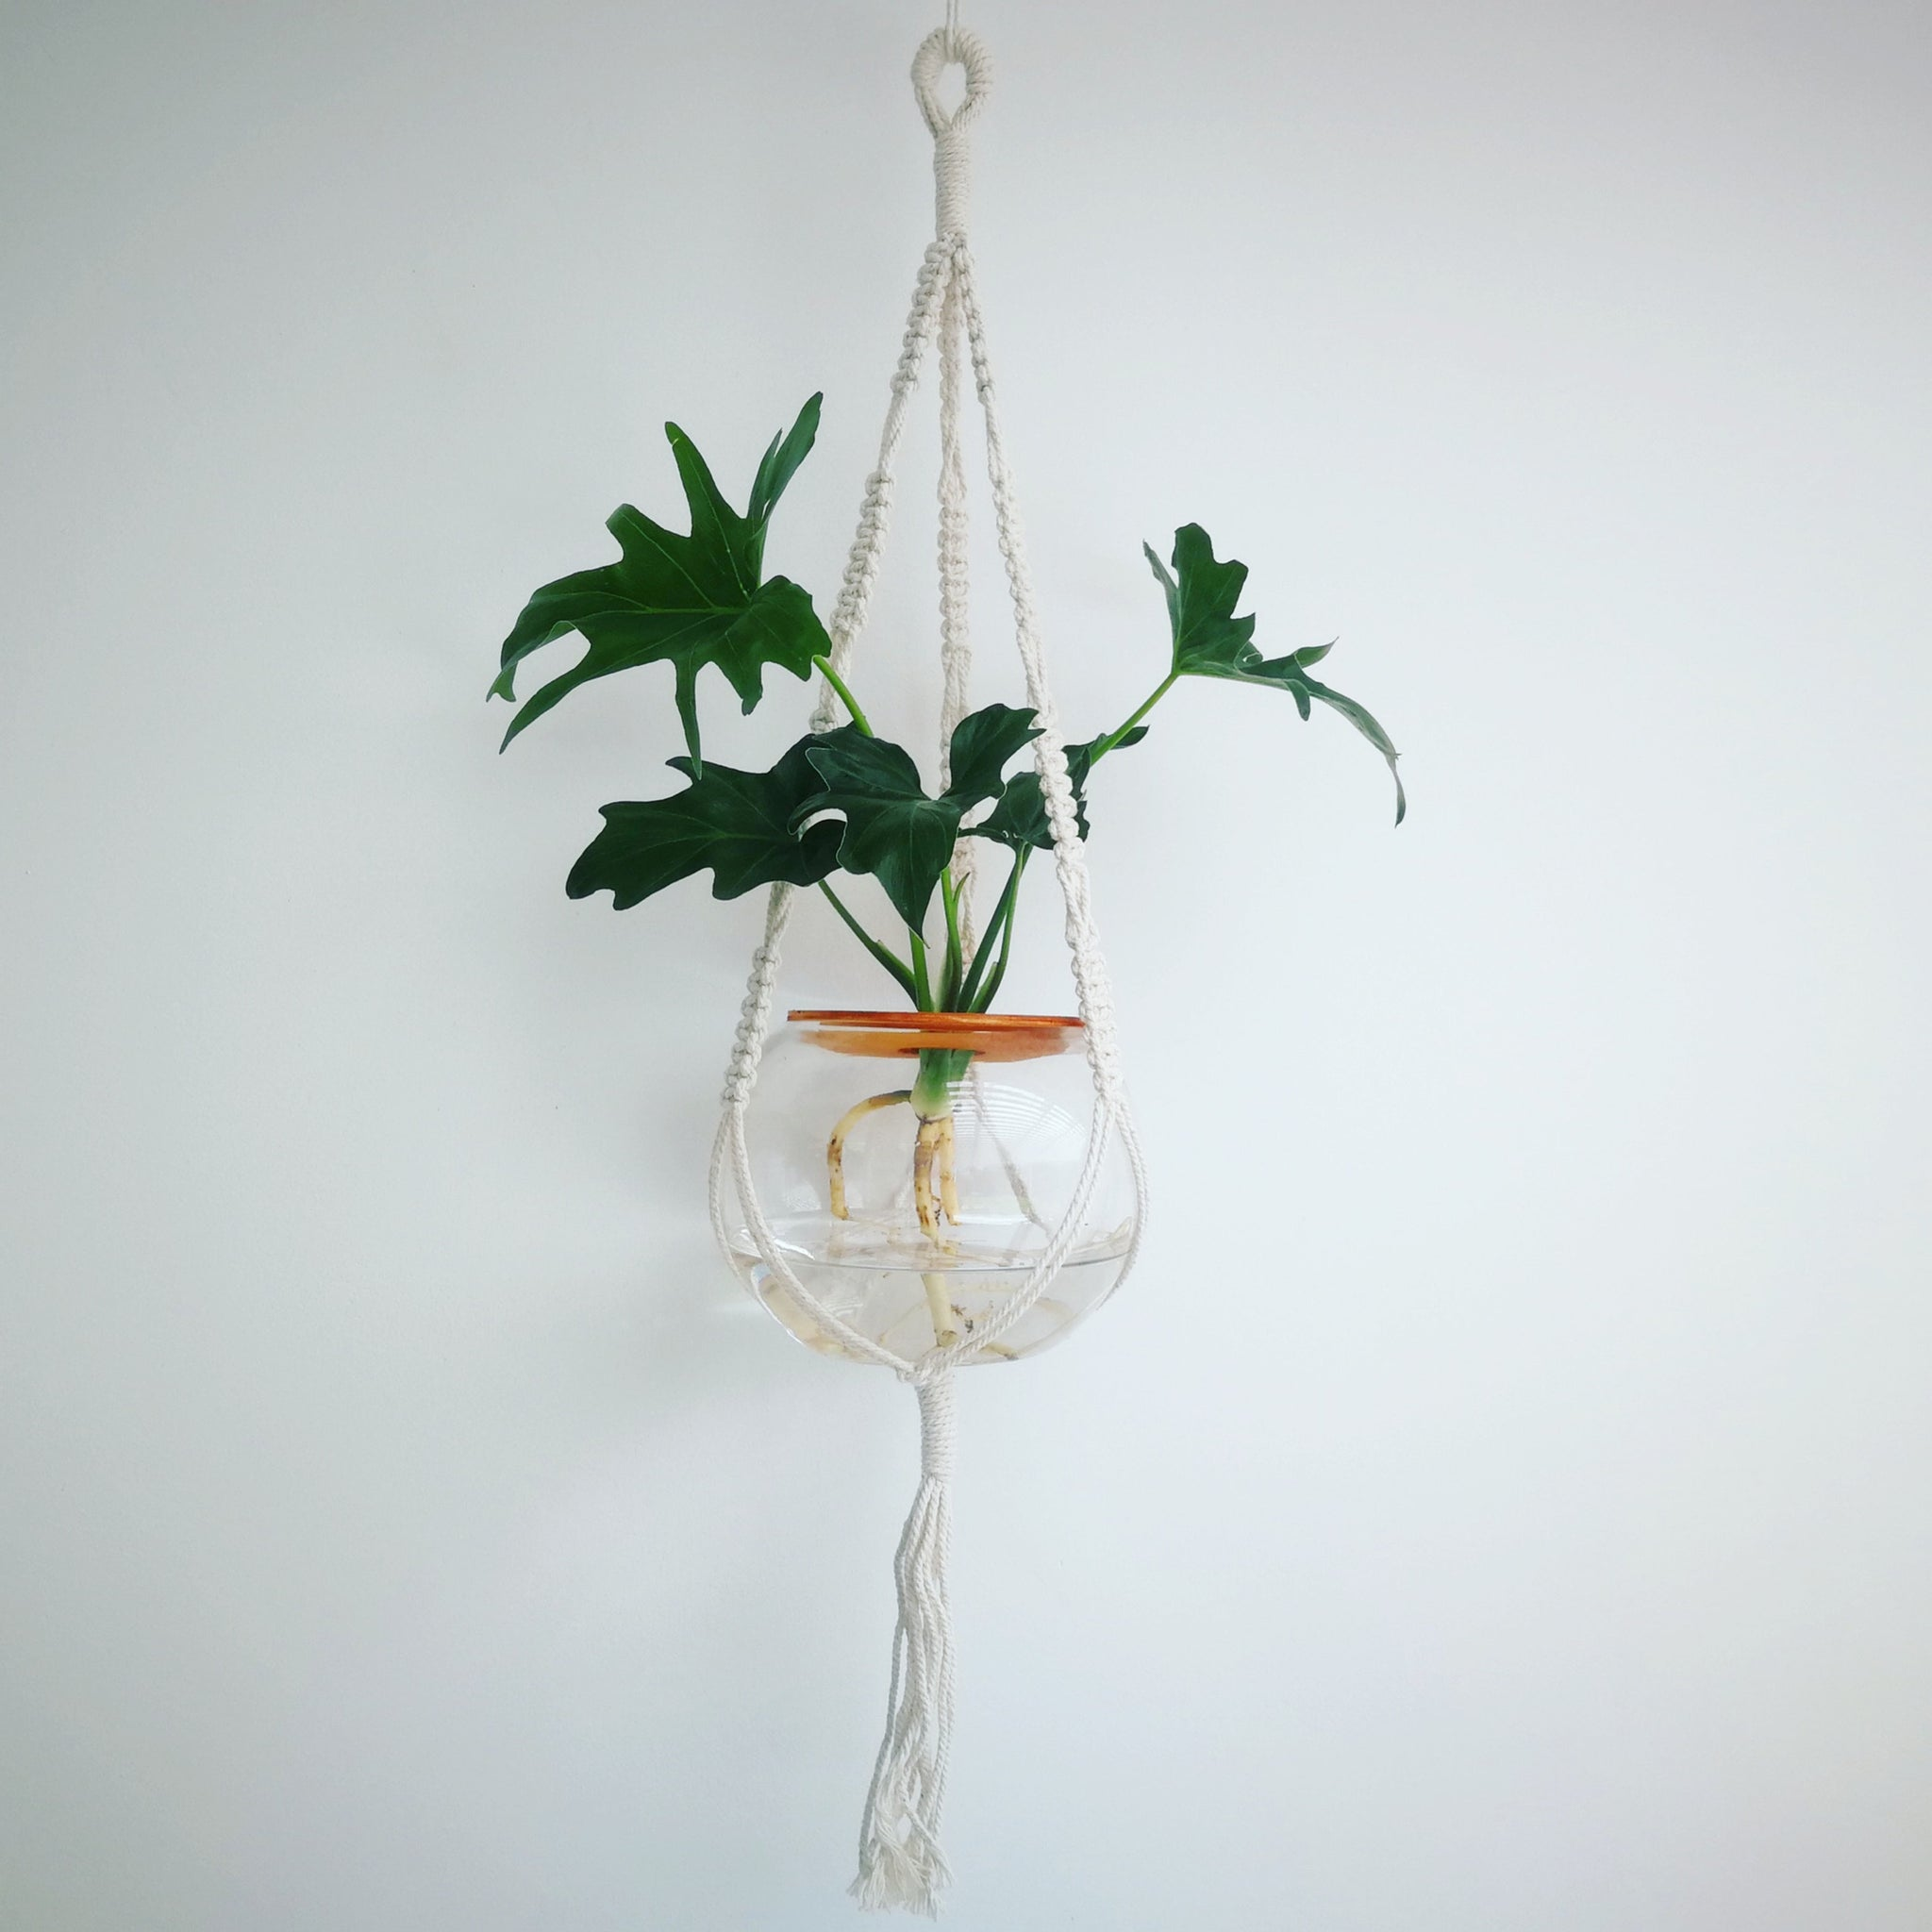 Macrame hanger with fishbowl and philodendron selloum